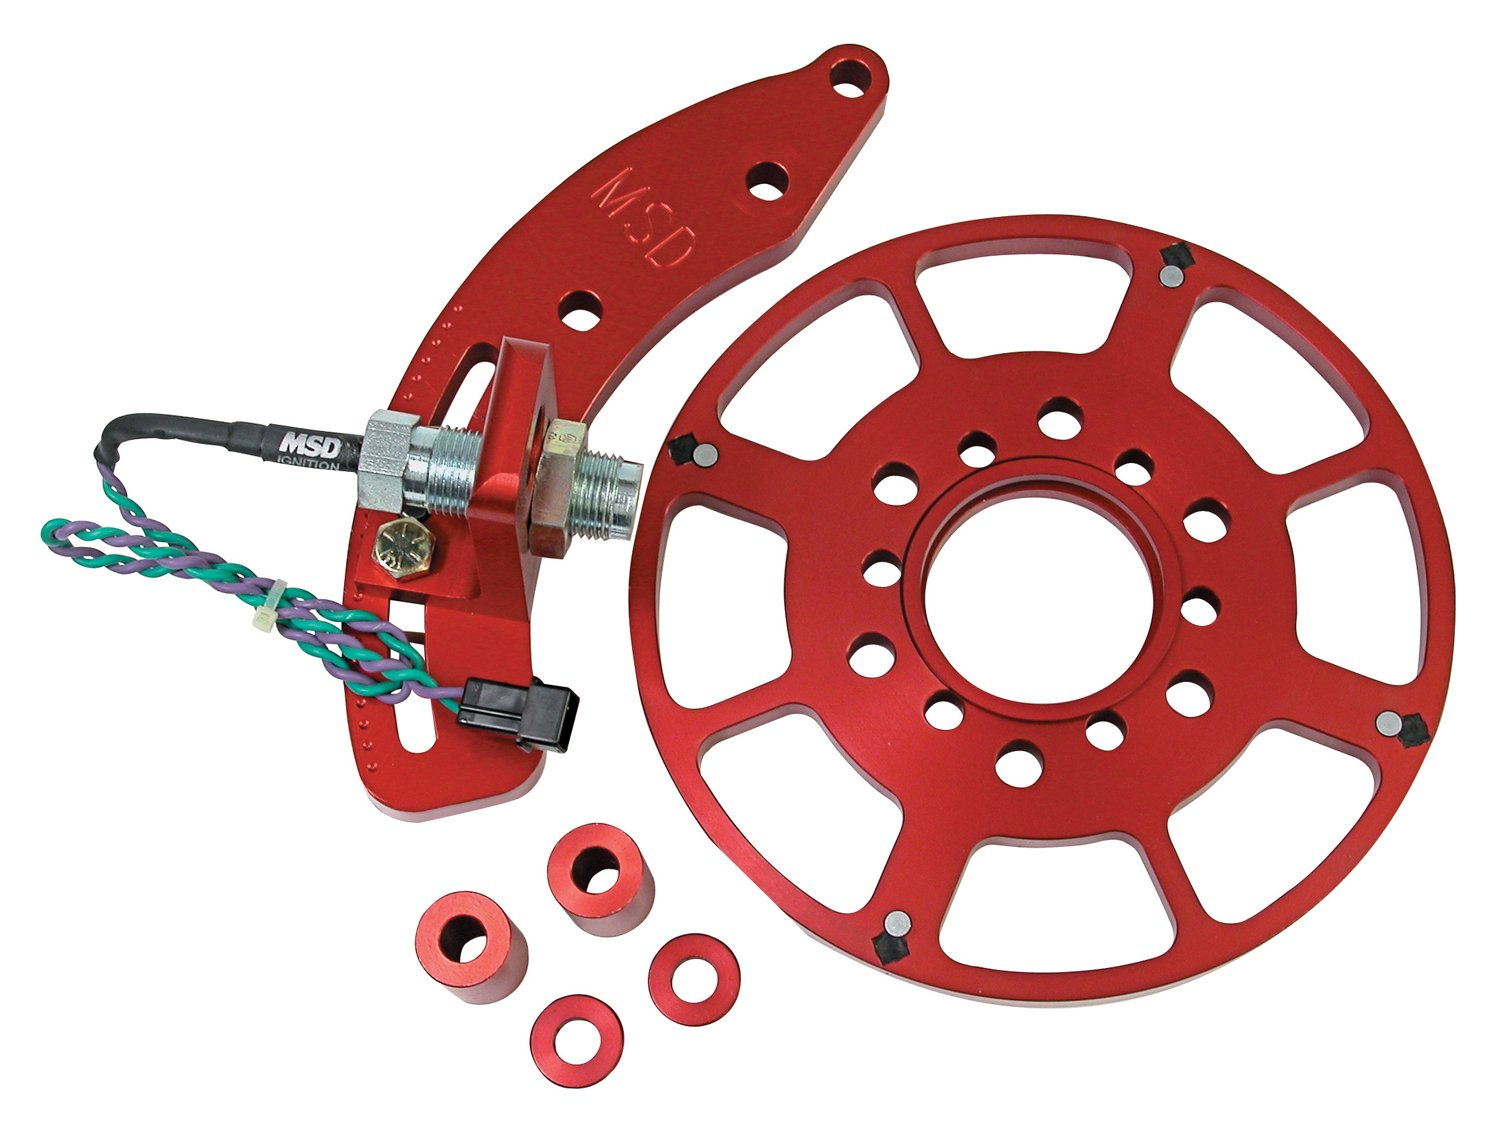 8636 - Chrysler Big Block Crank Trigger Kit Image